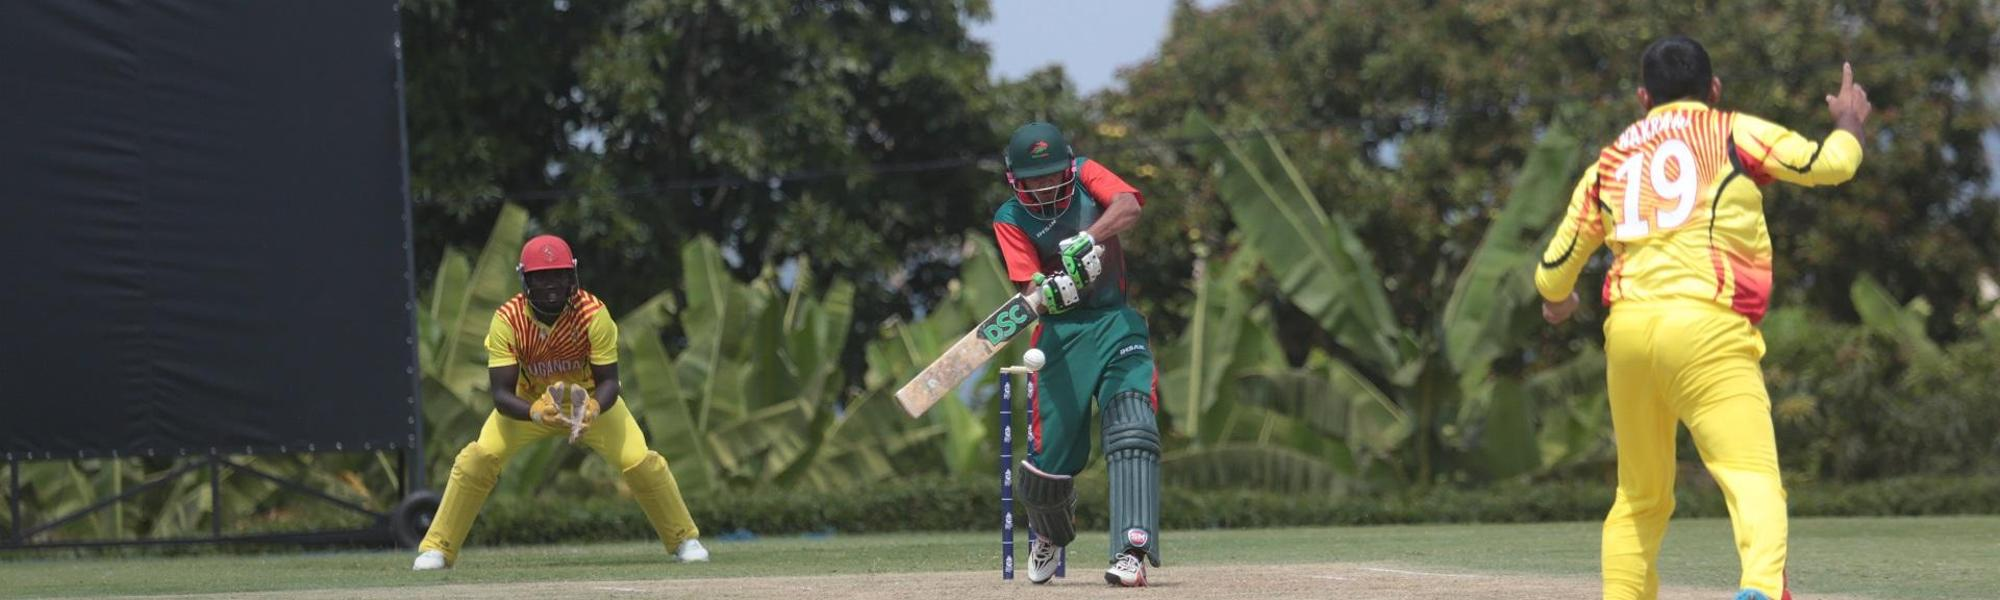 Dhiren Gondaria's 90 from 46 deliveries edged Kenya towards victory